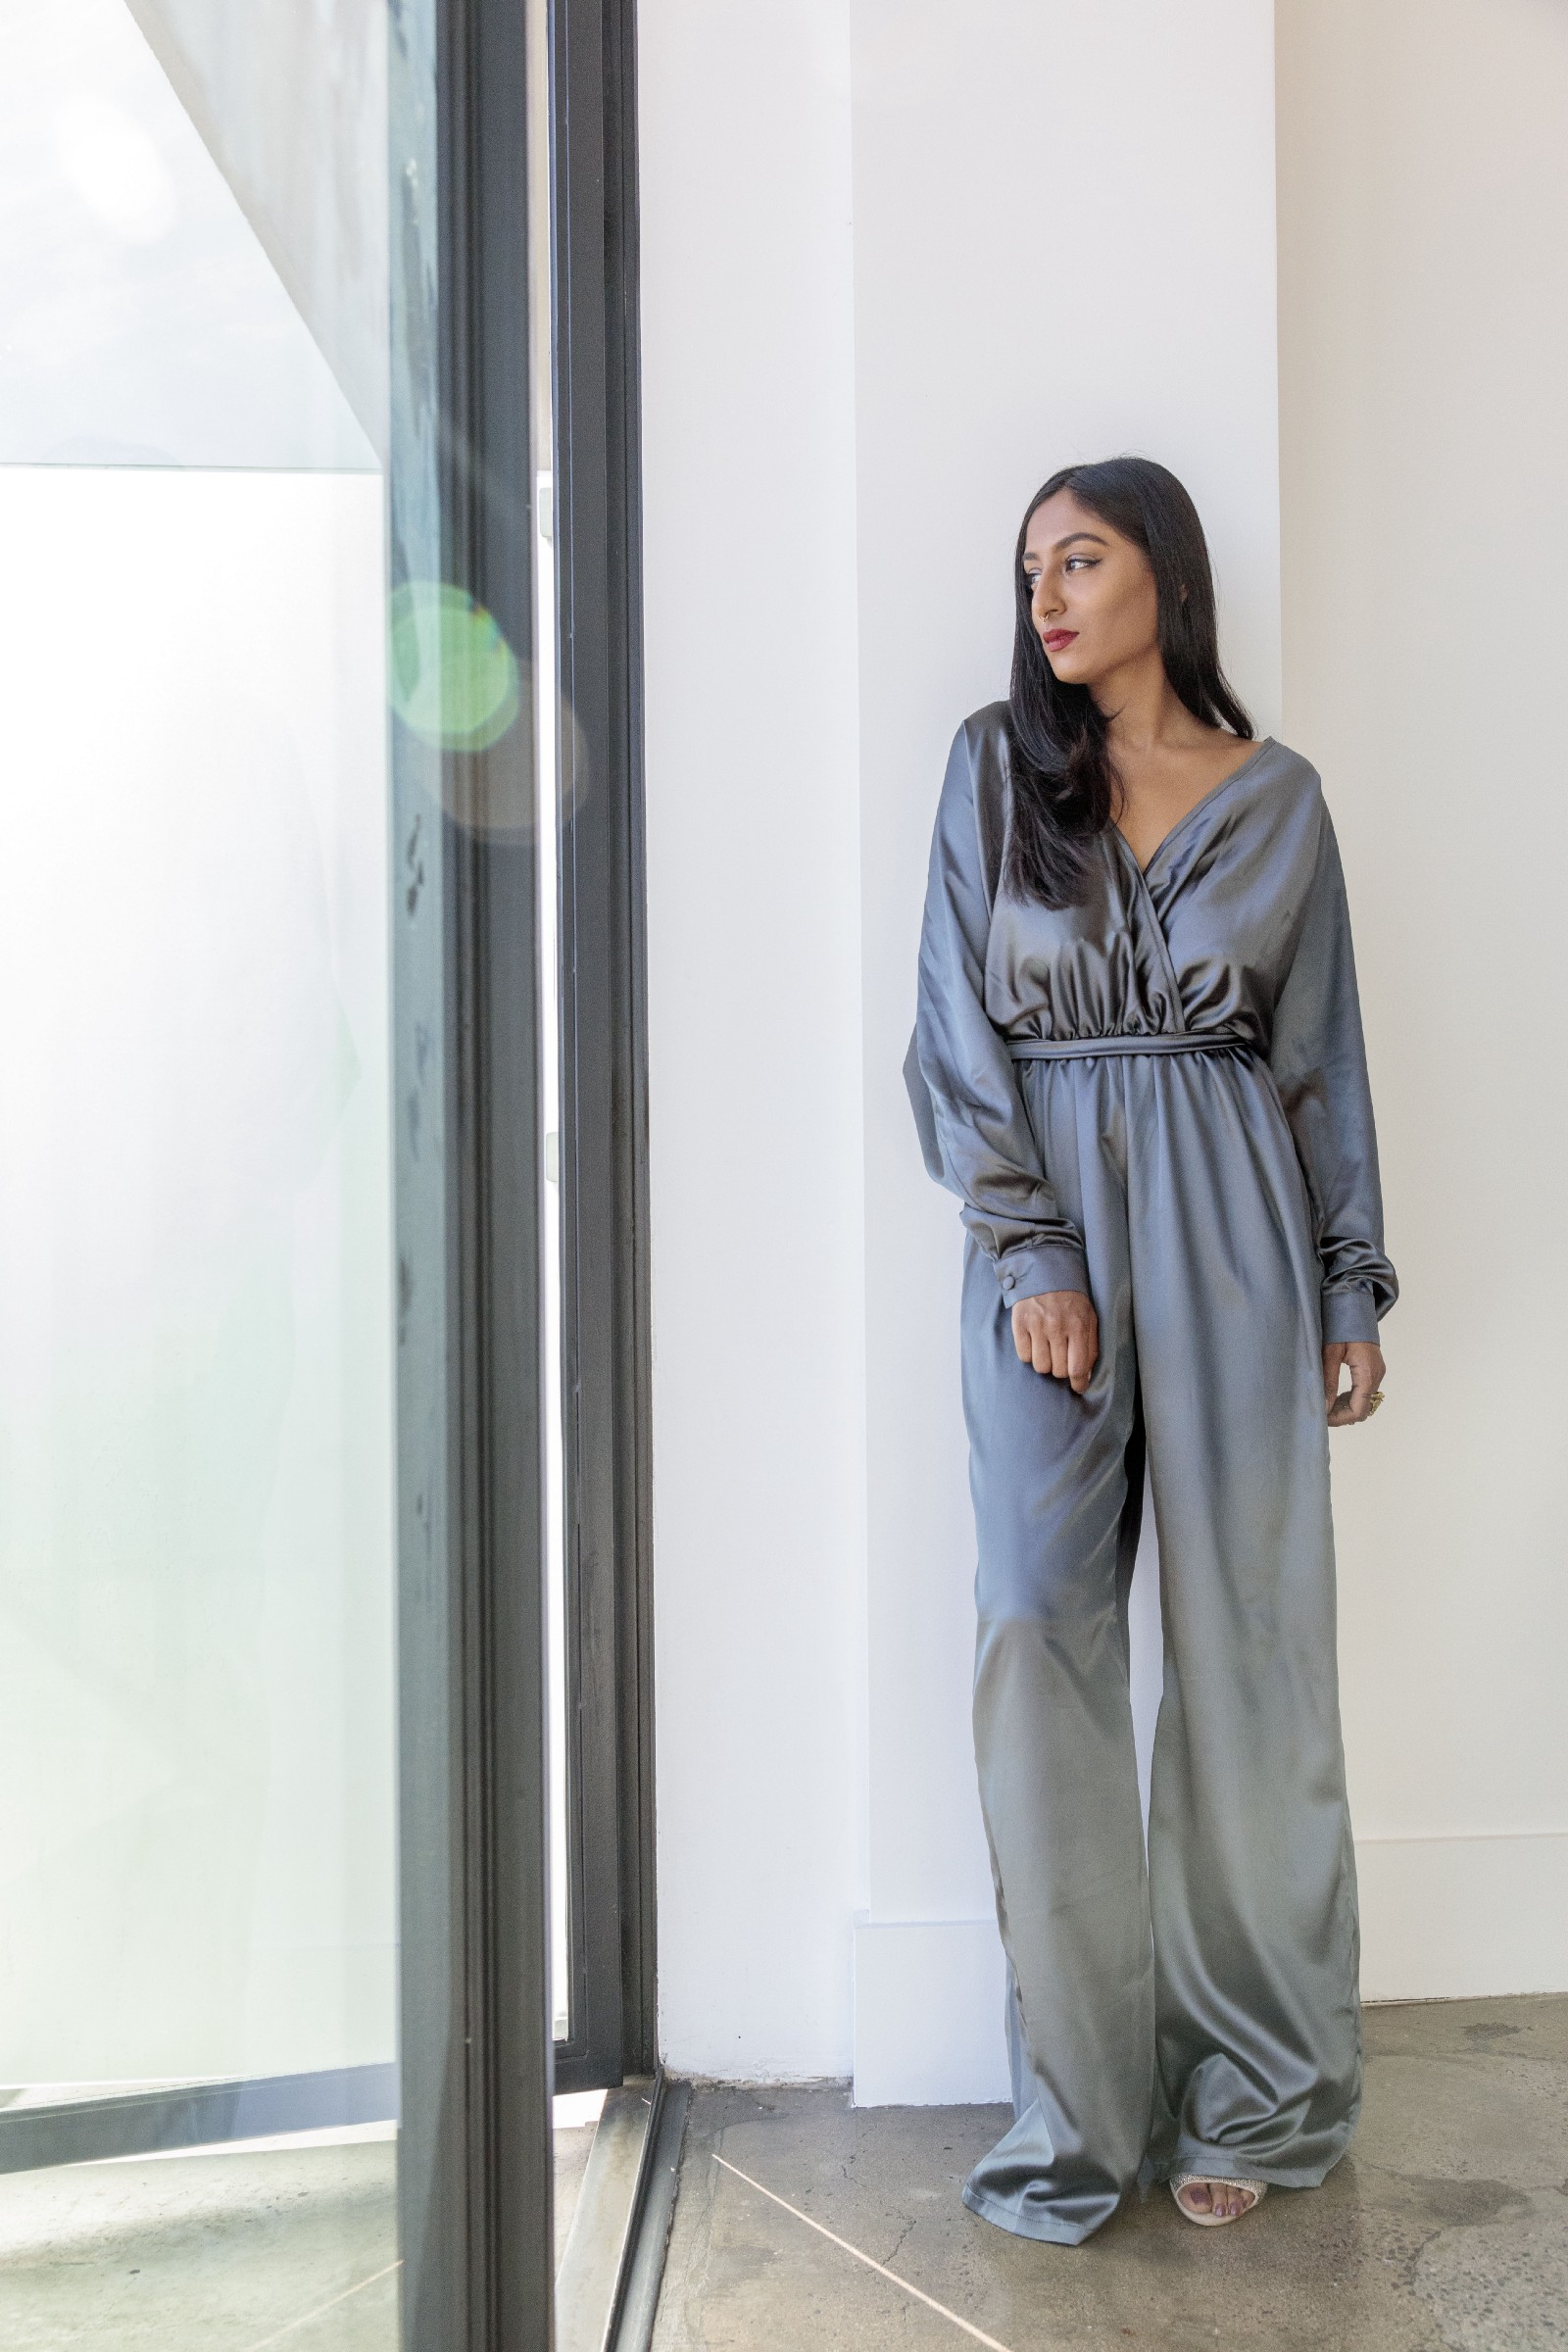 Pavana Reddy looking stunning in Bastet Noir's dark grey jumpsuit, photo by: Joshua White